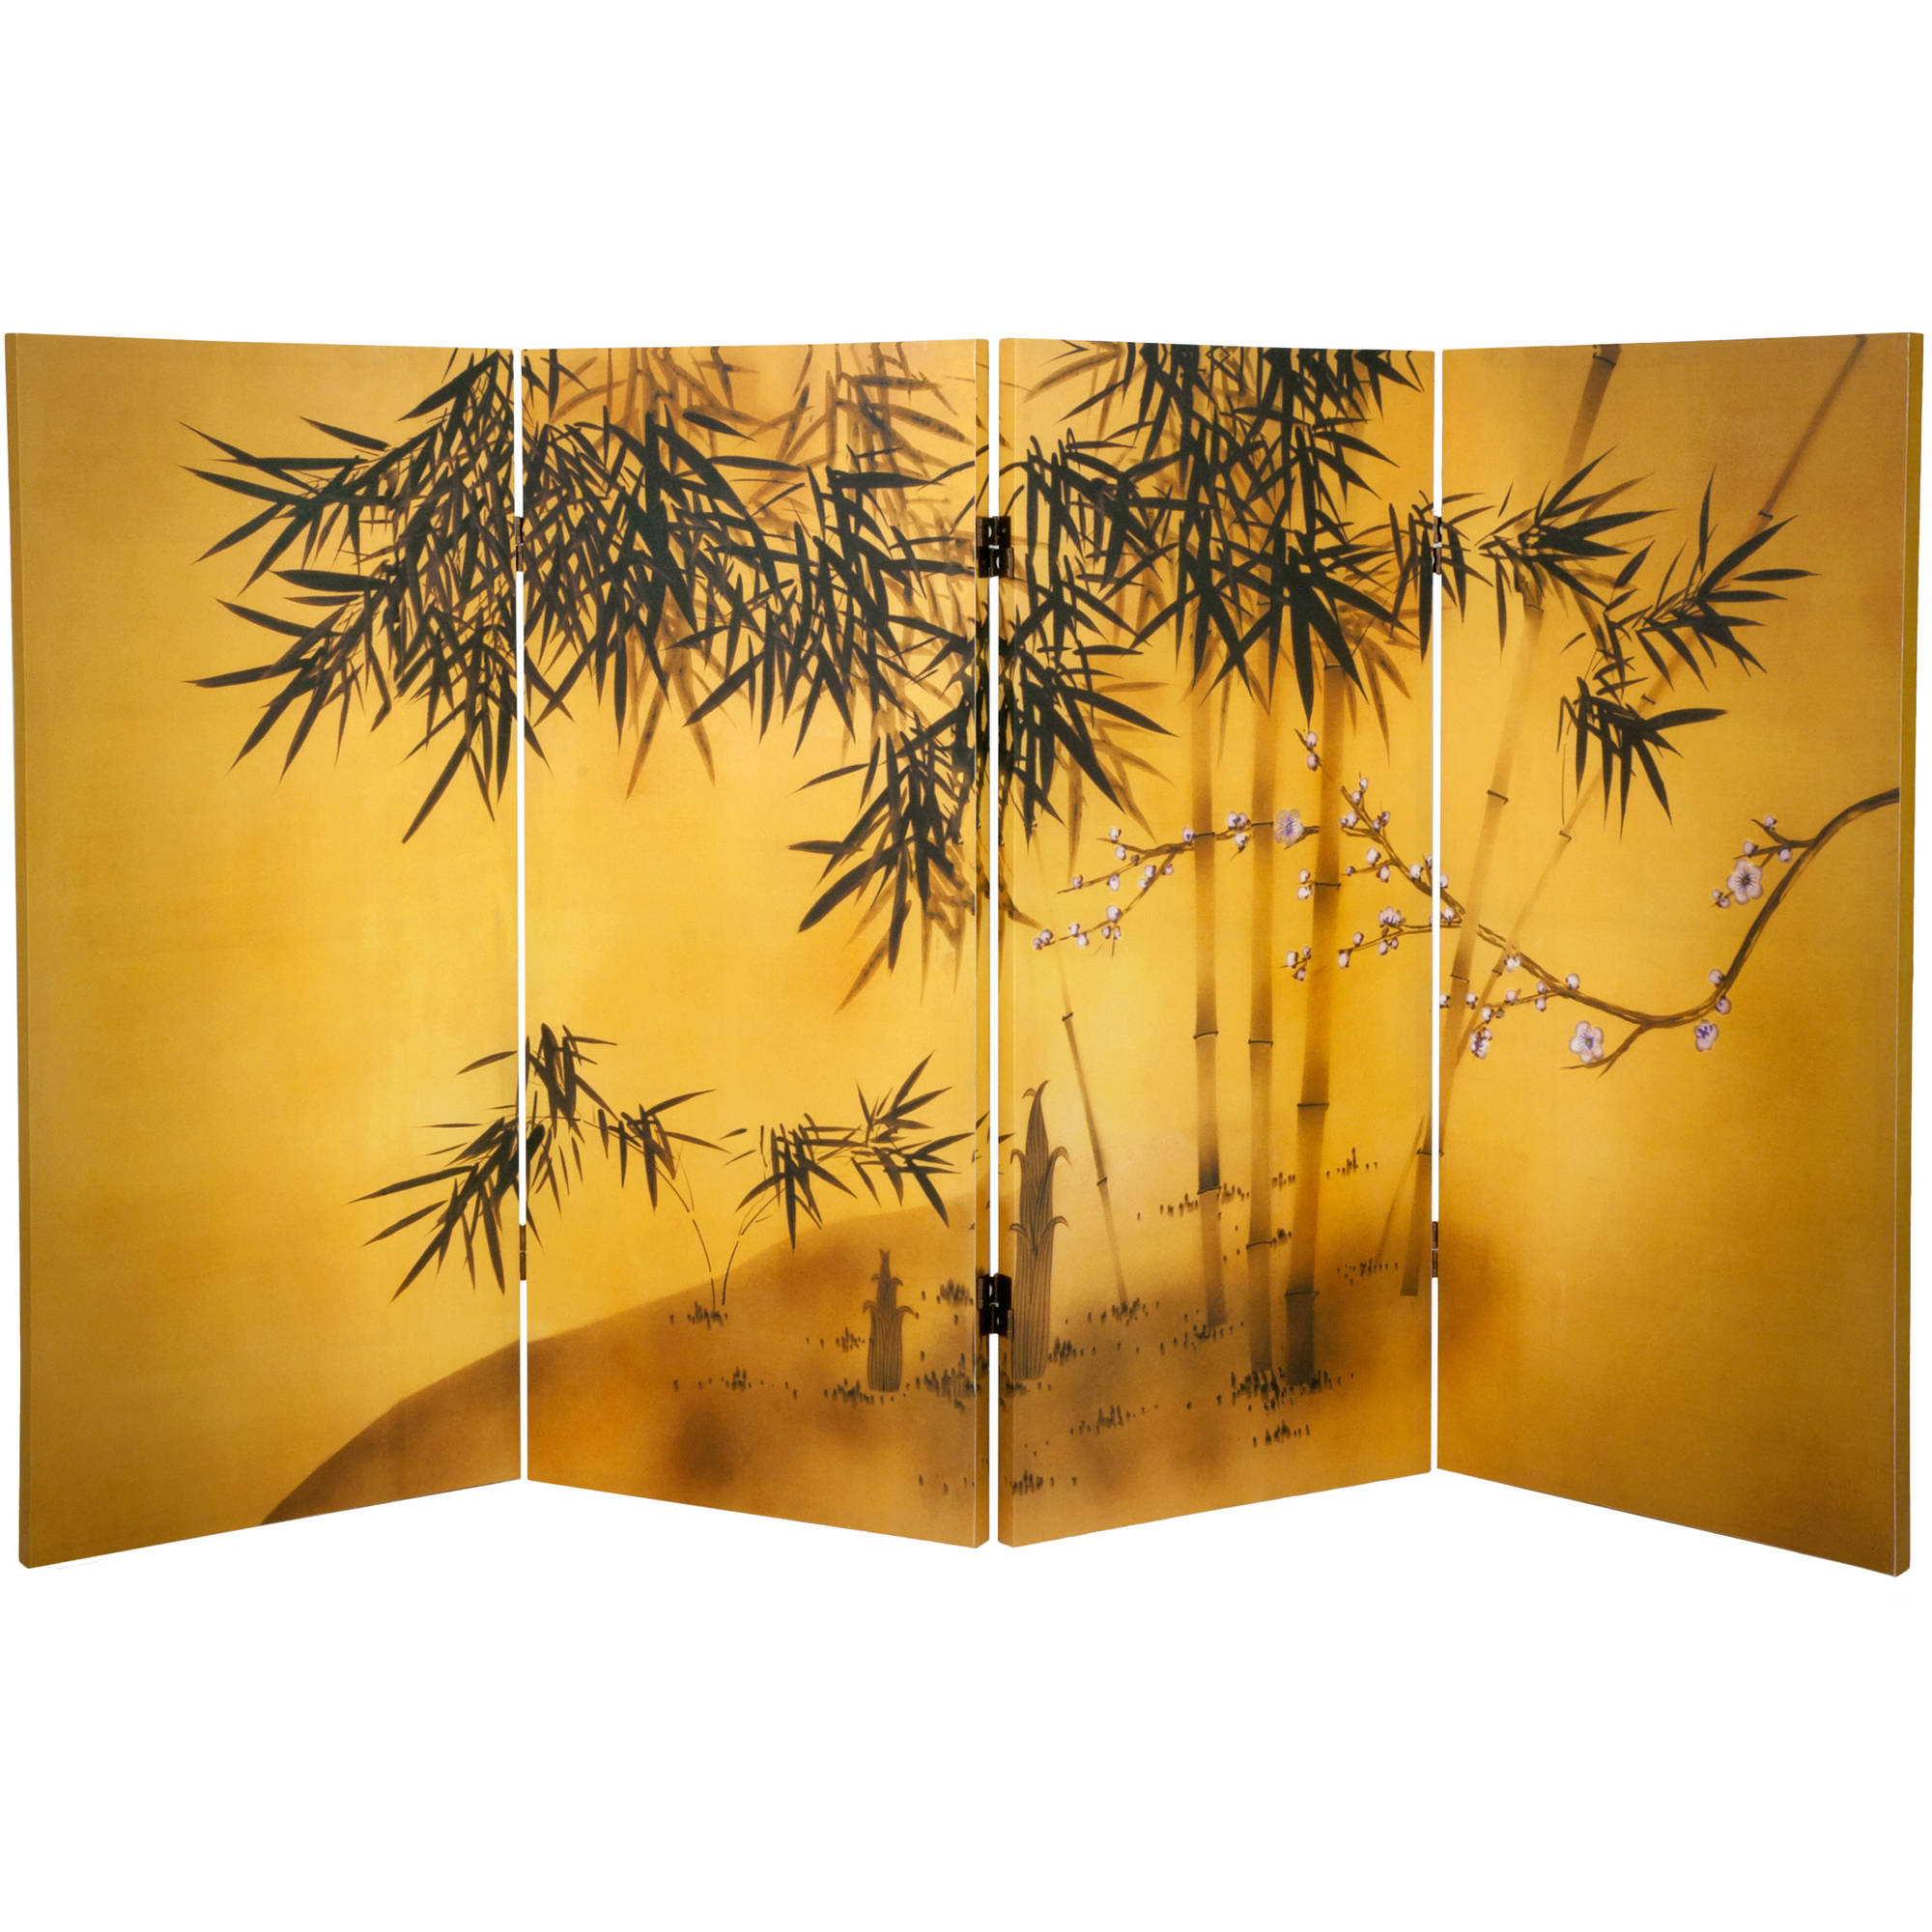 3' Tall Double Sided Bamboo Tree Canvas Room Divider